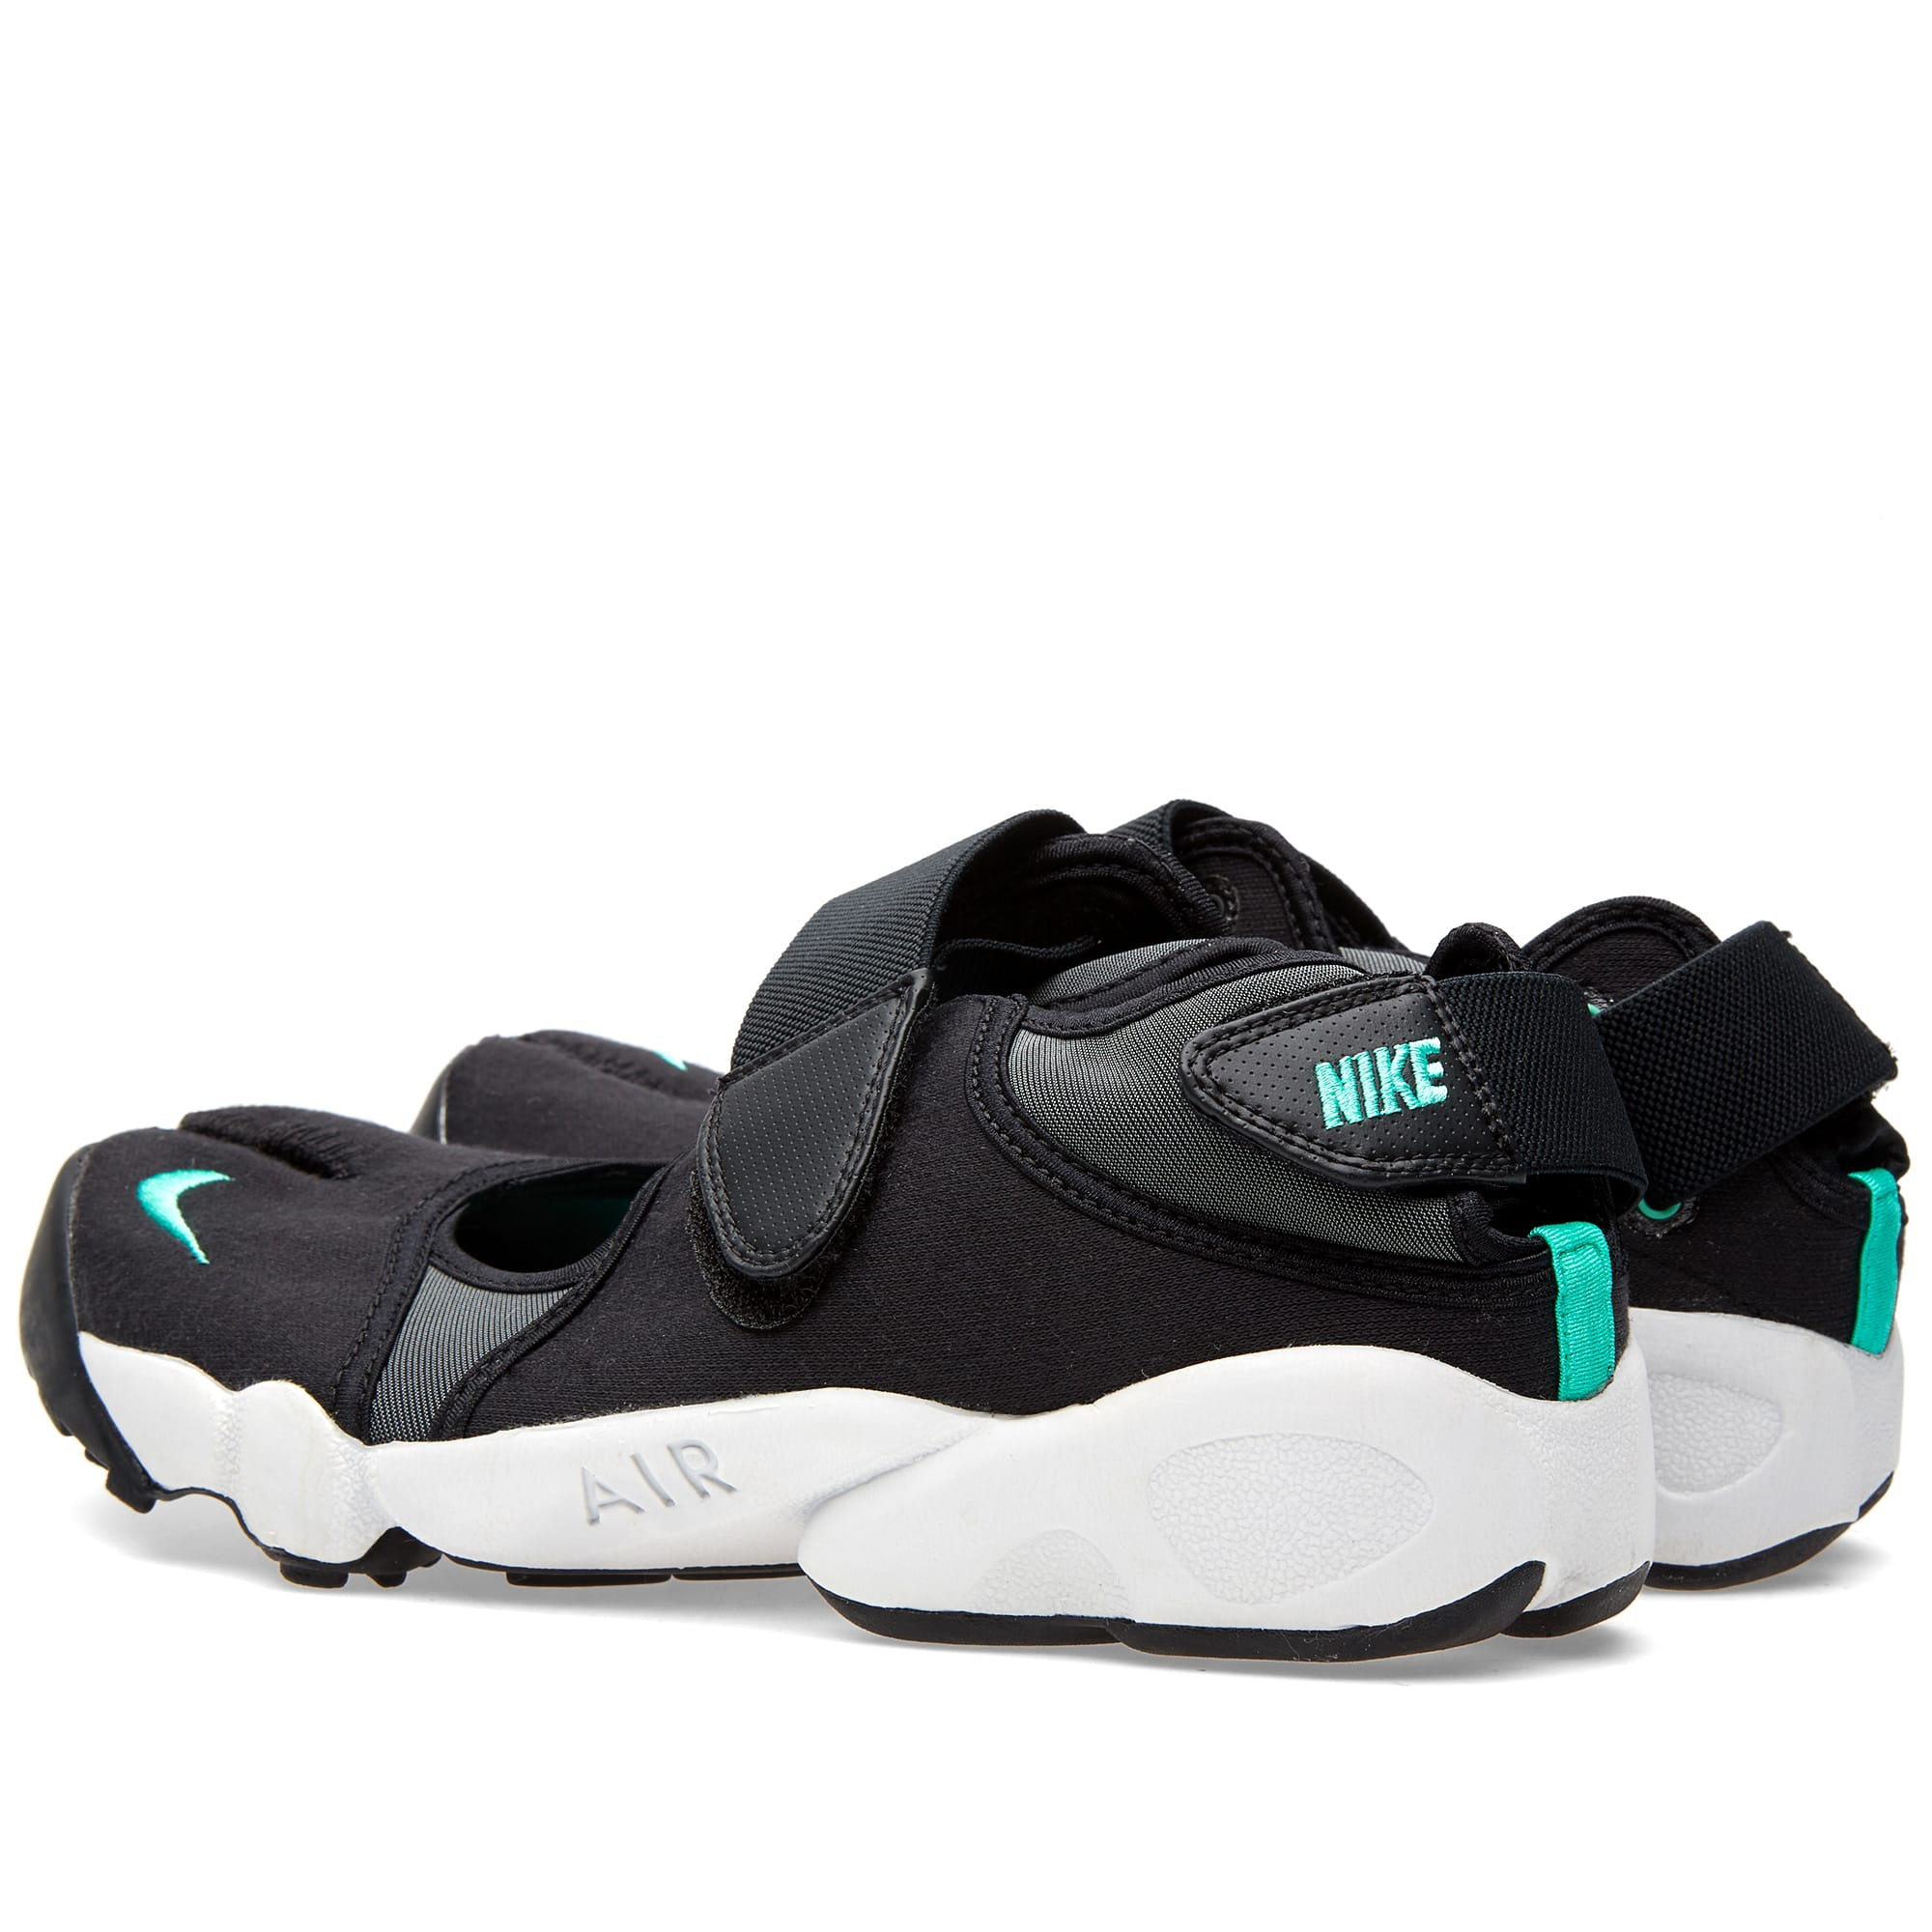 sale retailer 0efc2 9f3c0 Nike Air Rift Black, Menta   Anthracite   END.